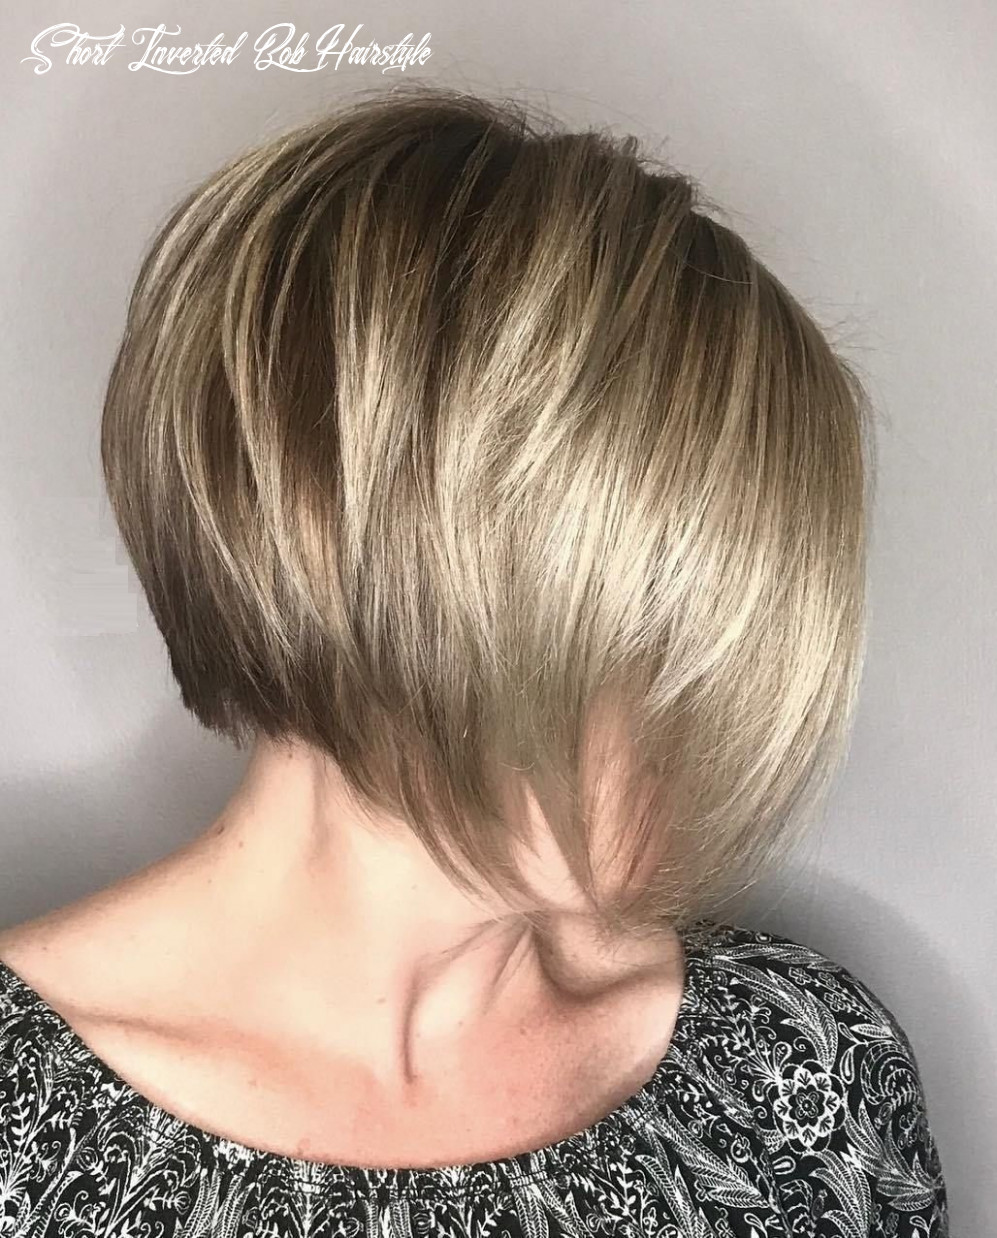 8 easy to style inverted bob short hairstyles | hairdo hairstyle short inverted bob hairstyle